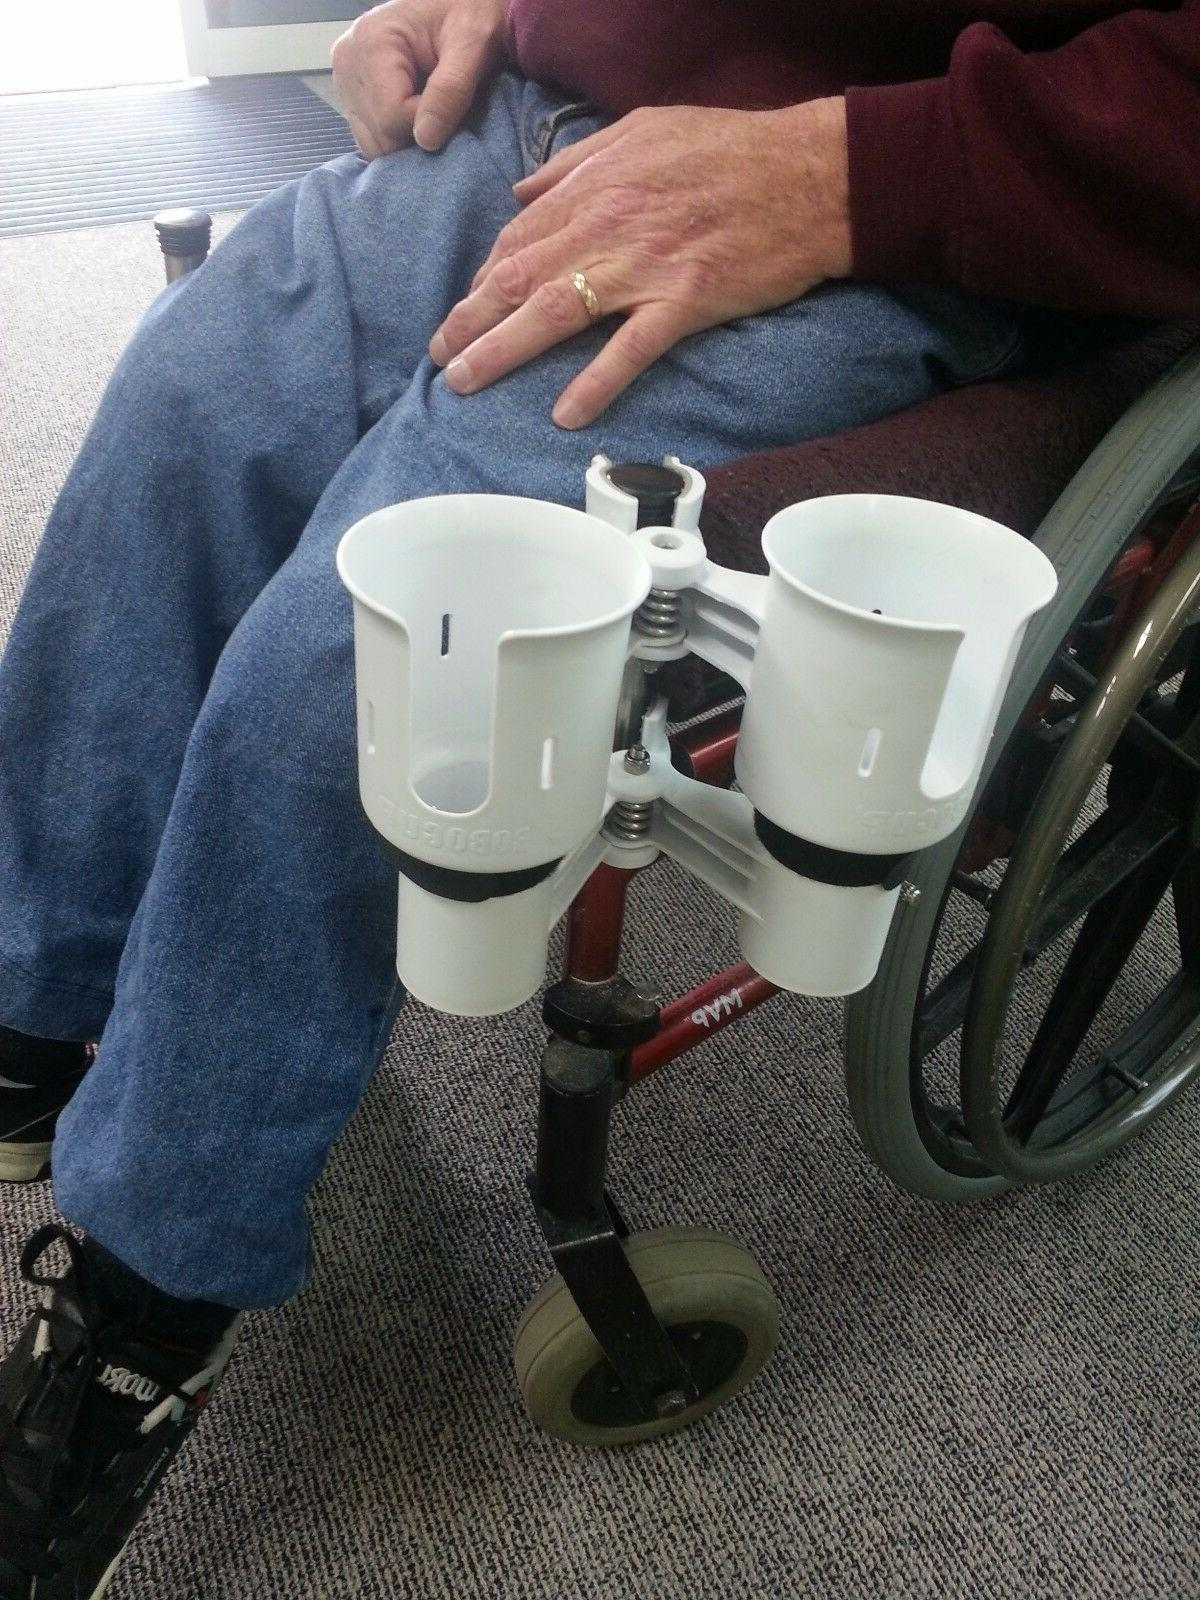 *ROBOCUP* Clamp On Drink Cup Holder Mobility Scooter Crutch Cane